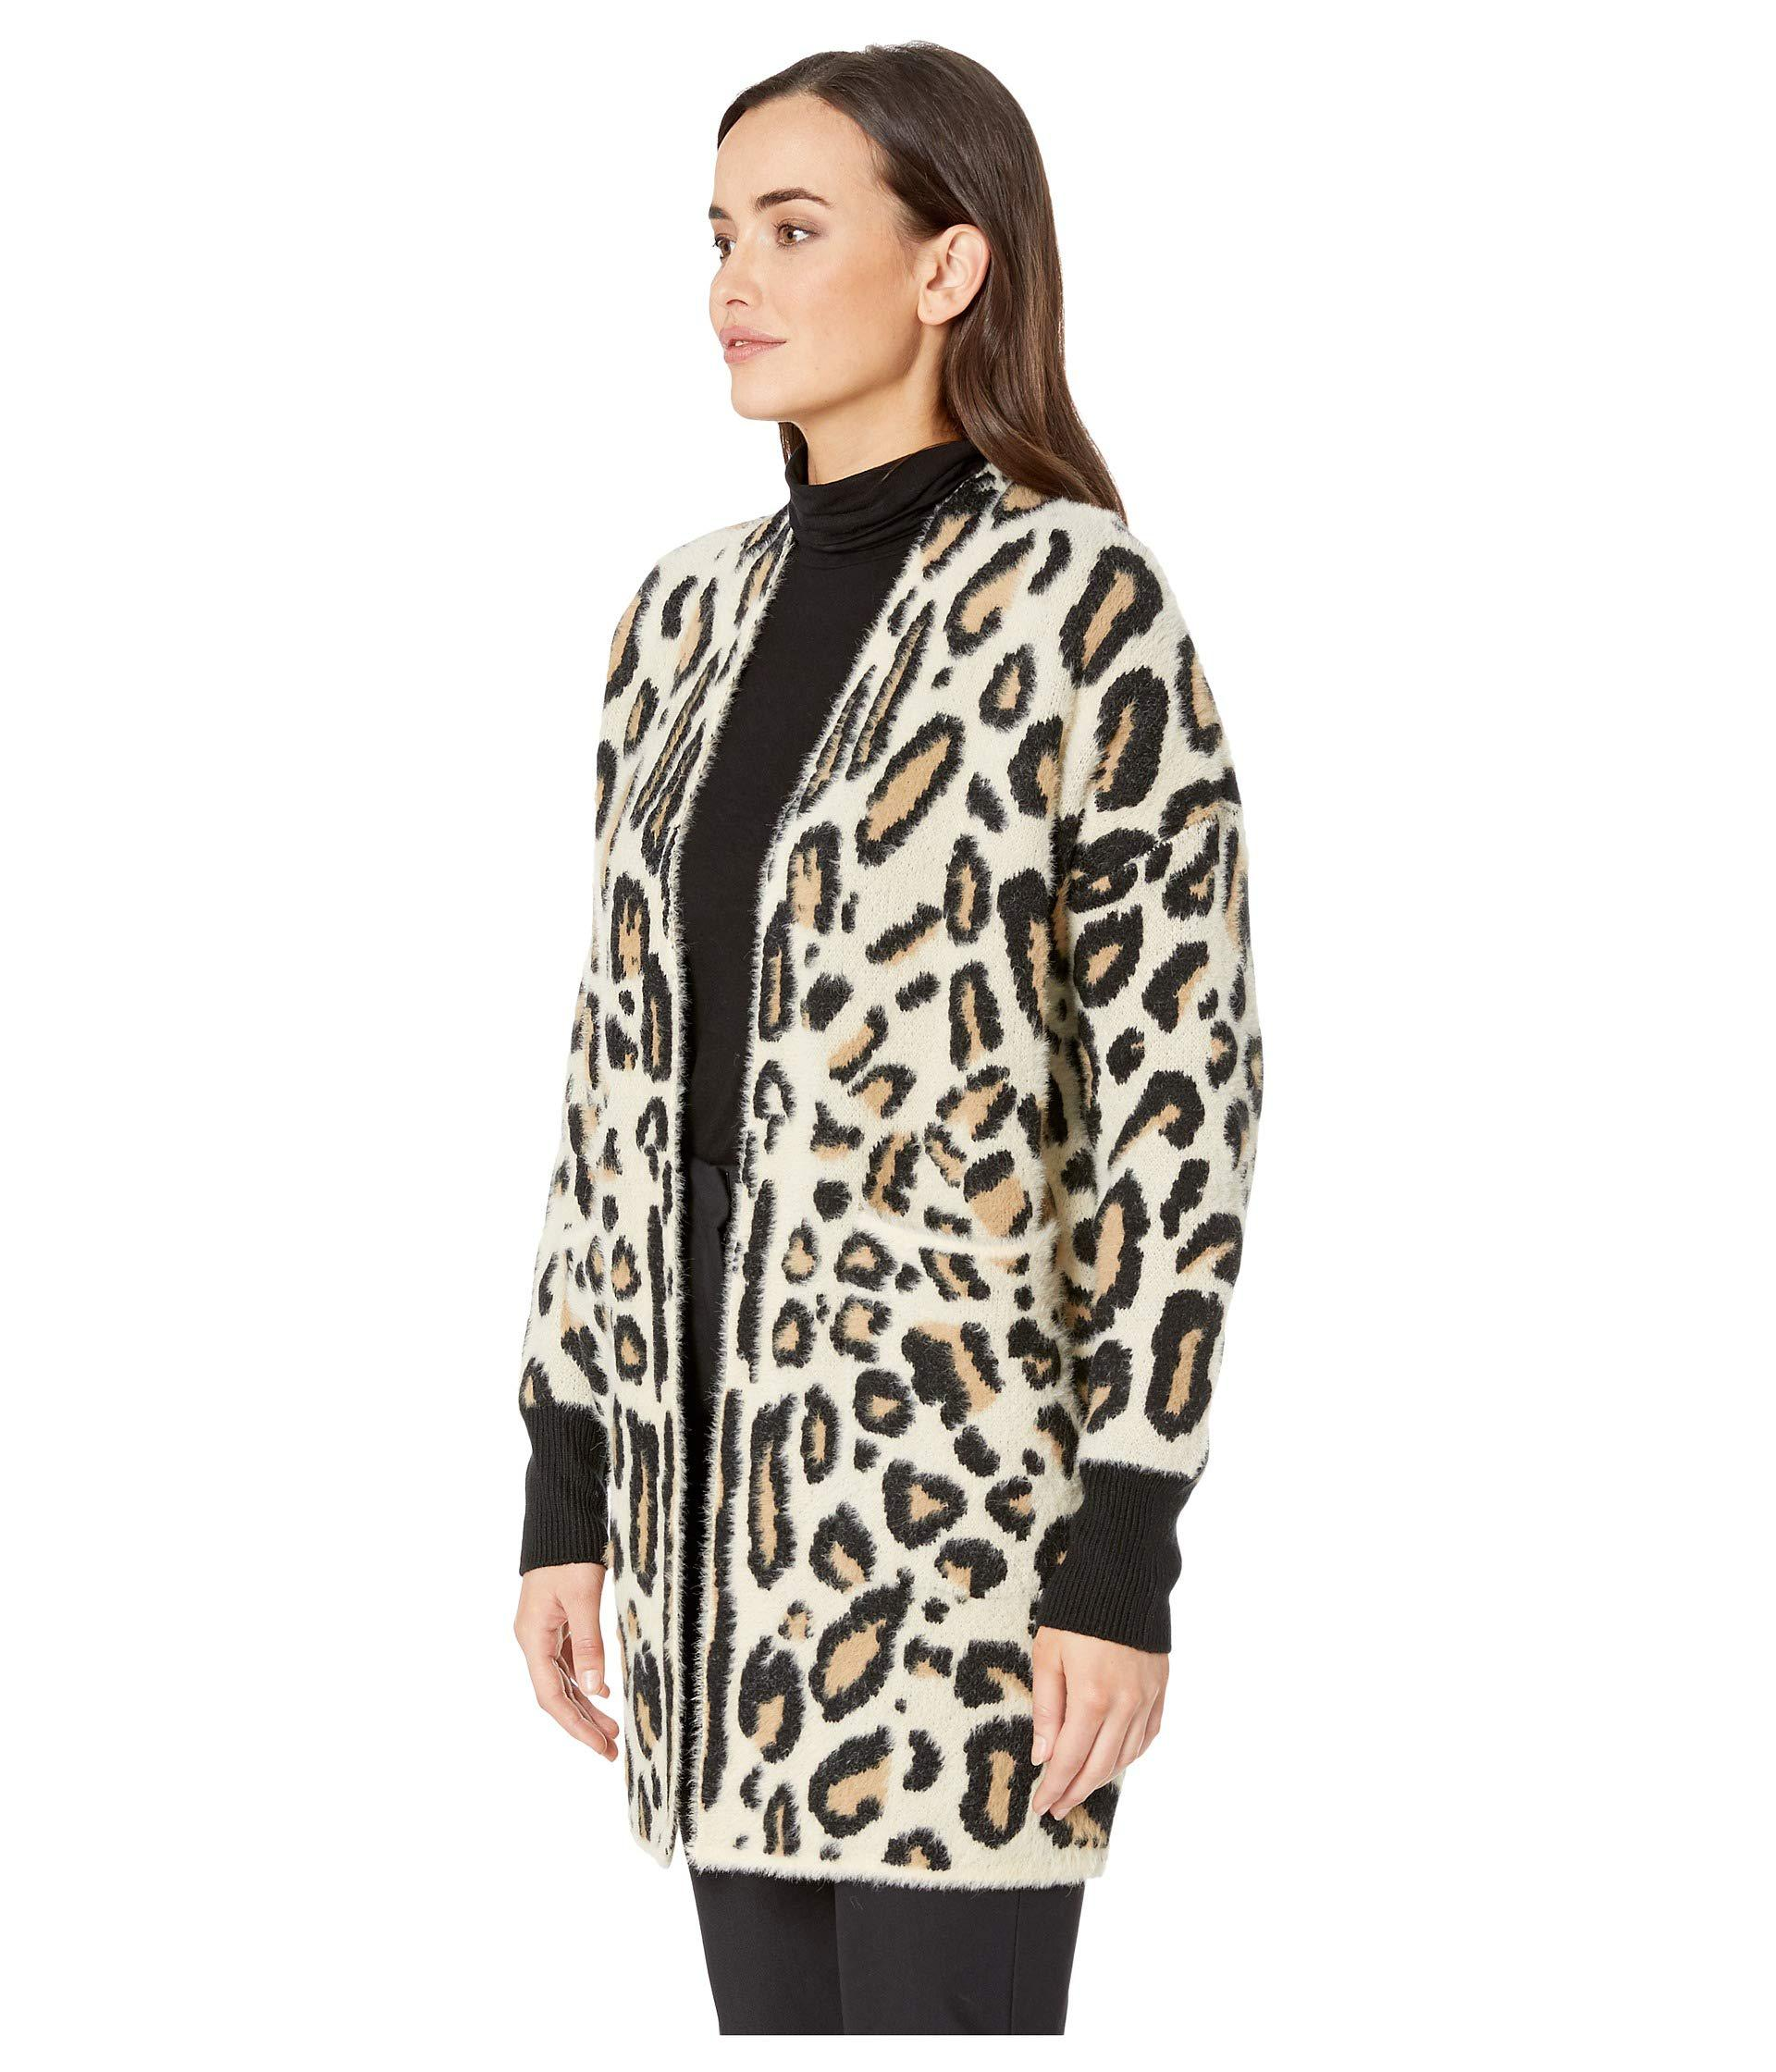 87406e5d6a Lyst - Vince Camuto Long Sleeve Cheetah Eyelash Two-pocket Cardigan (wood  Ash) Women s Sweater in Black - Save 32%